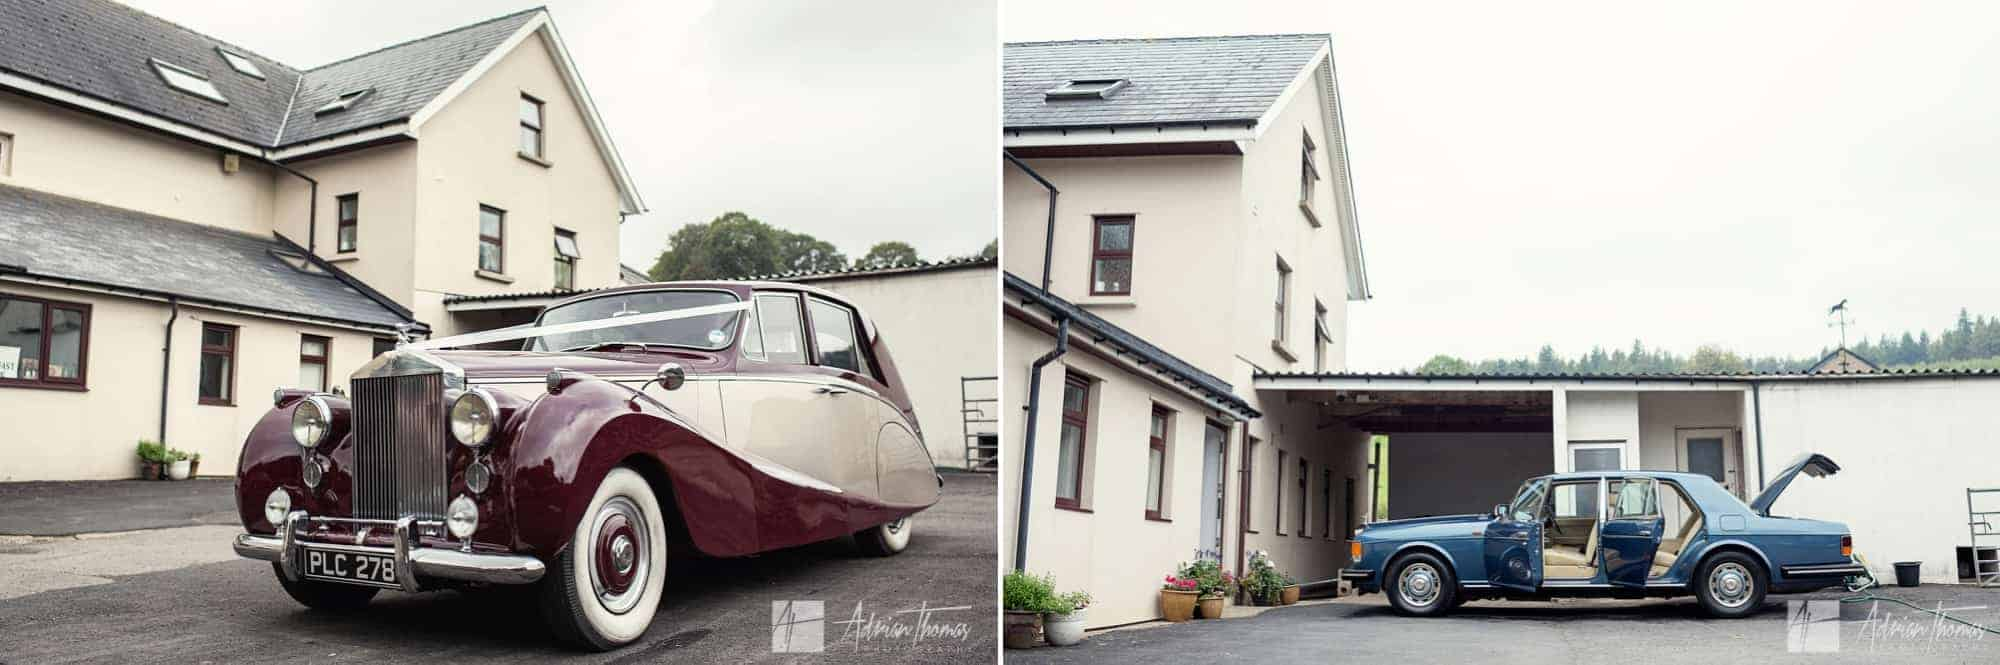 Wedding cars for Bridesmaid and Bride.